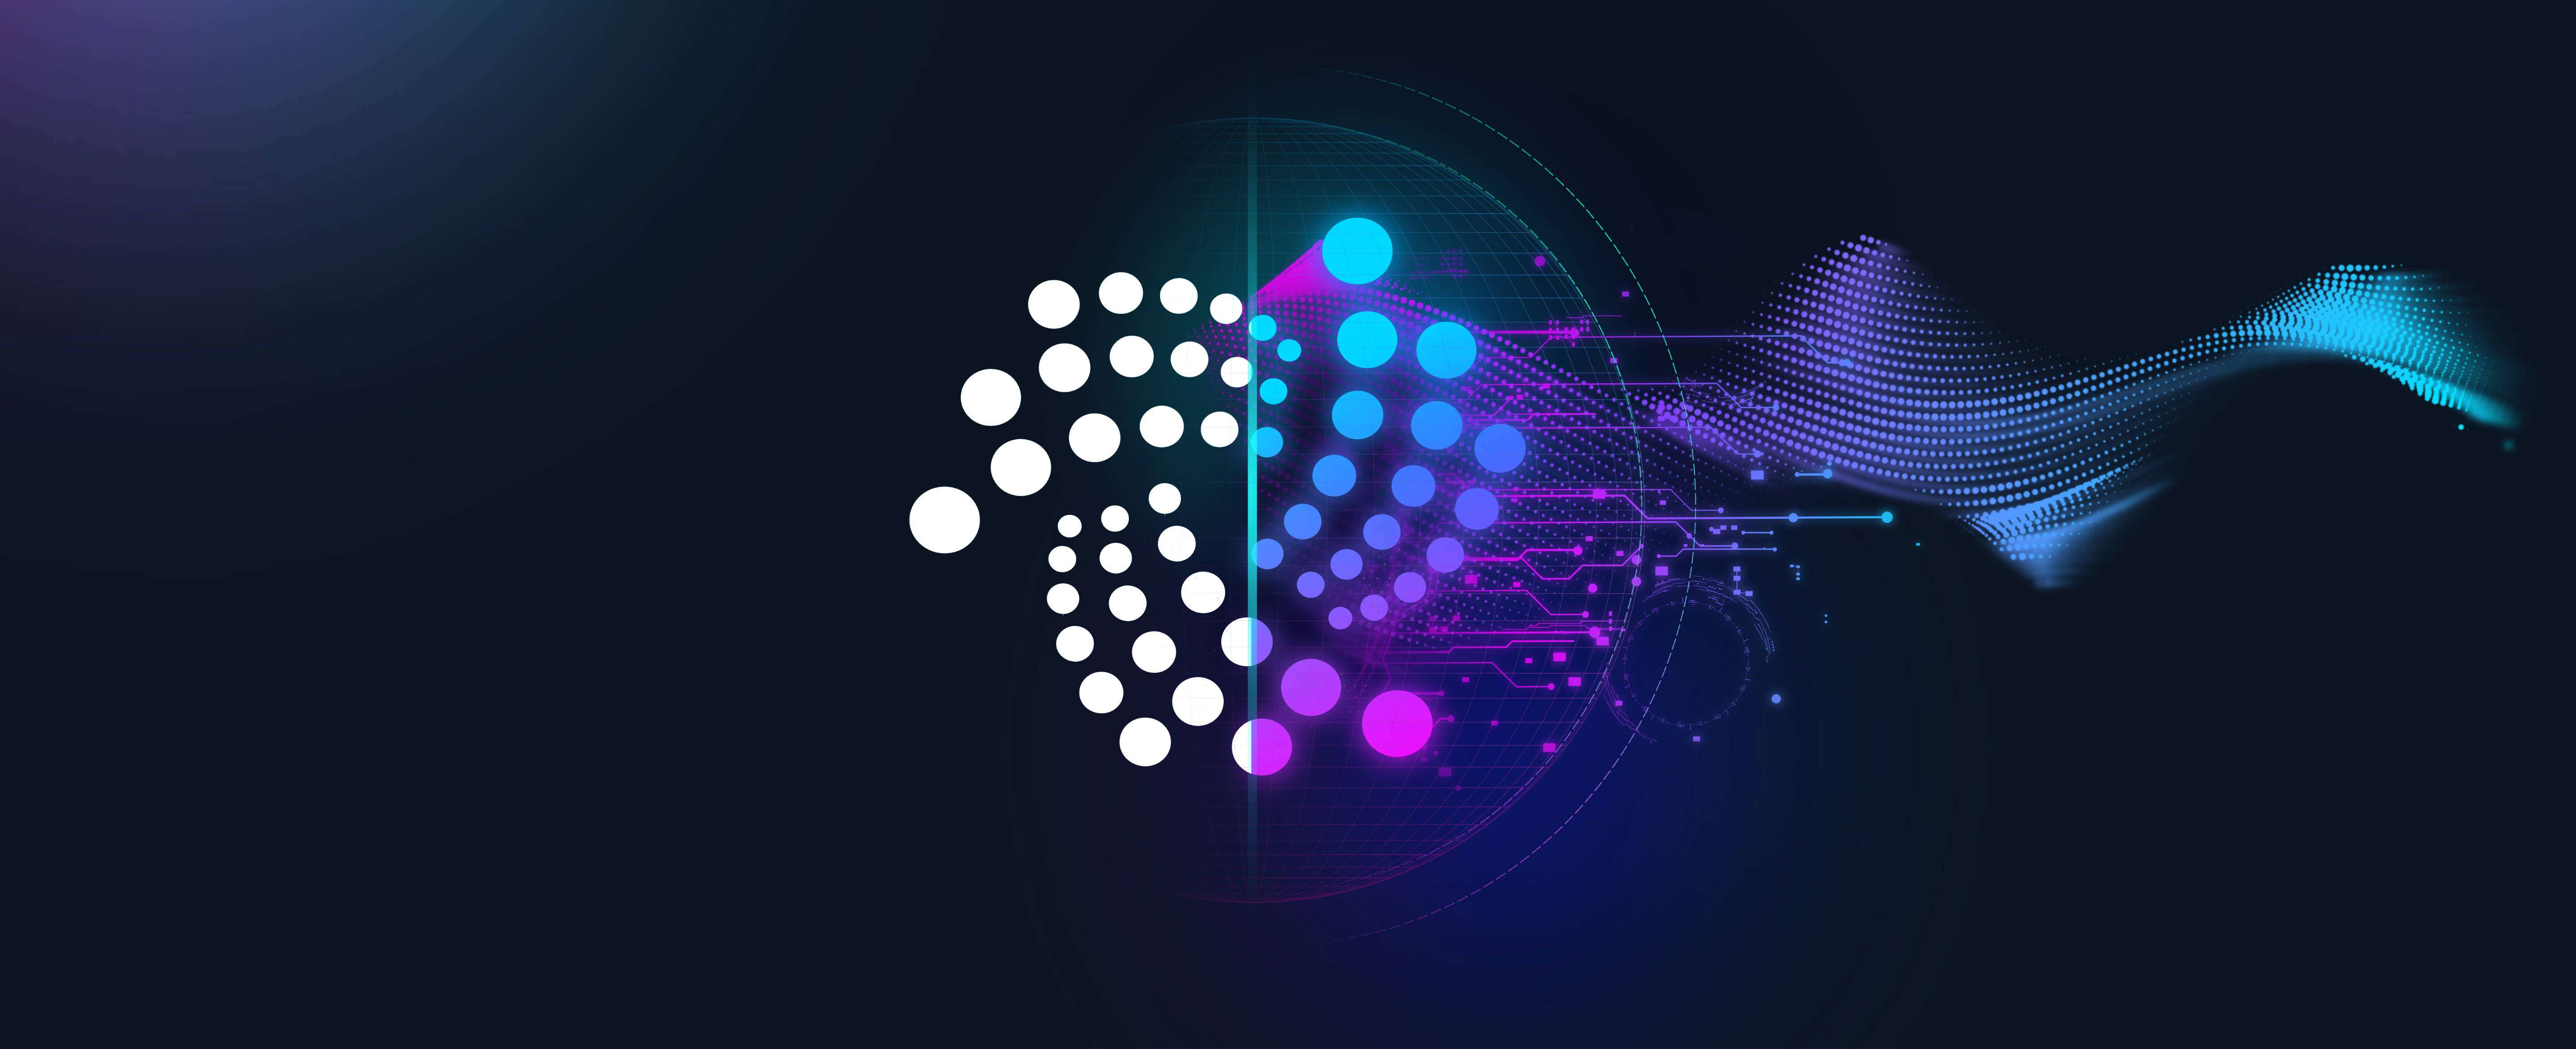 how to invest in iota cryptocurrency